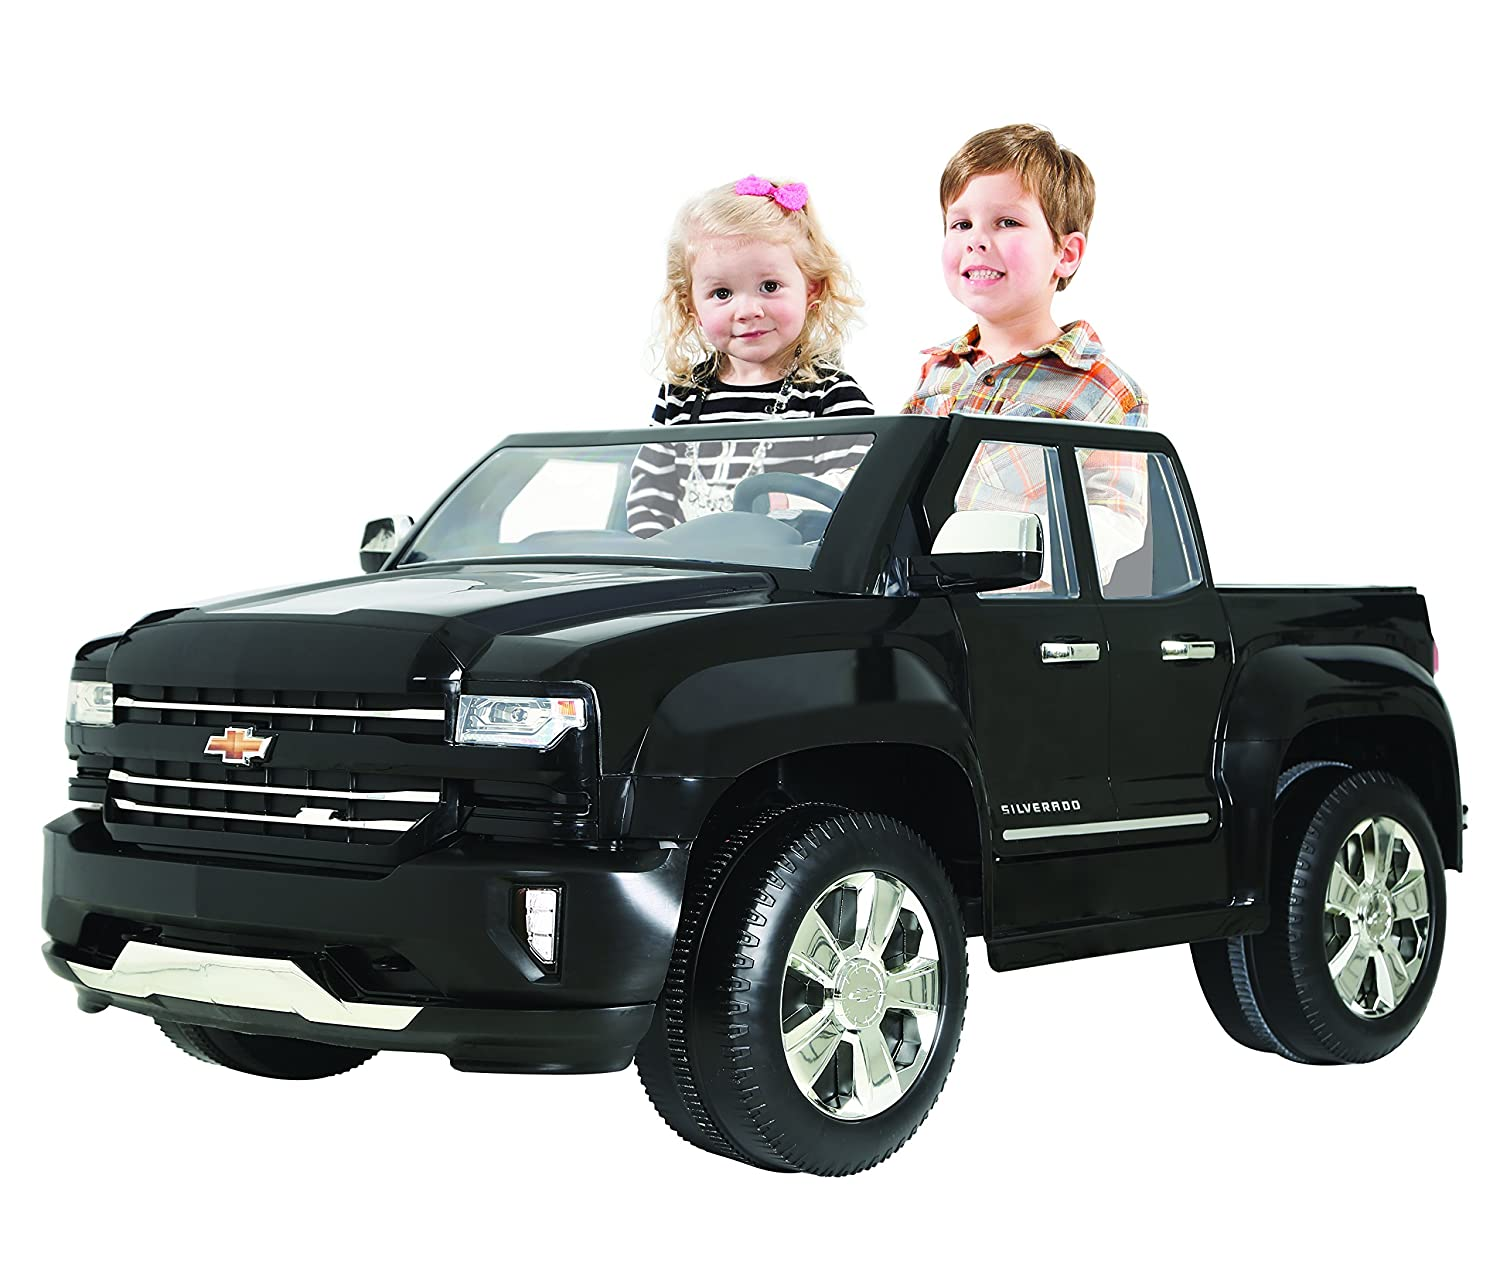 1949 Chevy Truck 4x4 For Sale Rollplay 12v Silverado Ride On Toy Battery Powered Kids Car Black Toys Games